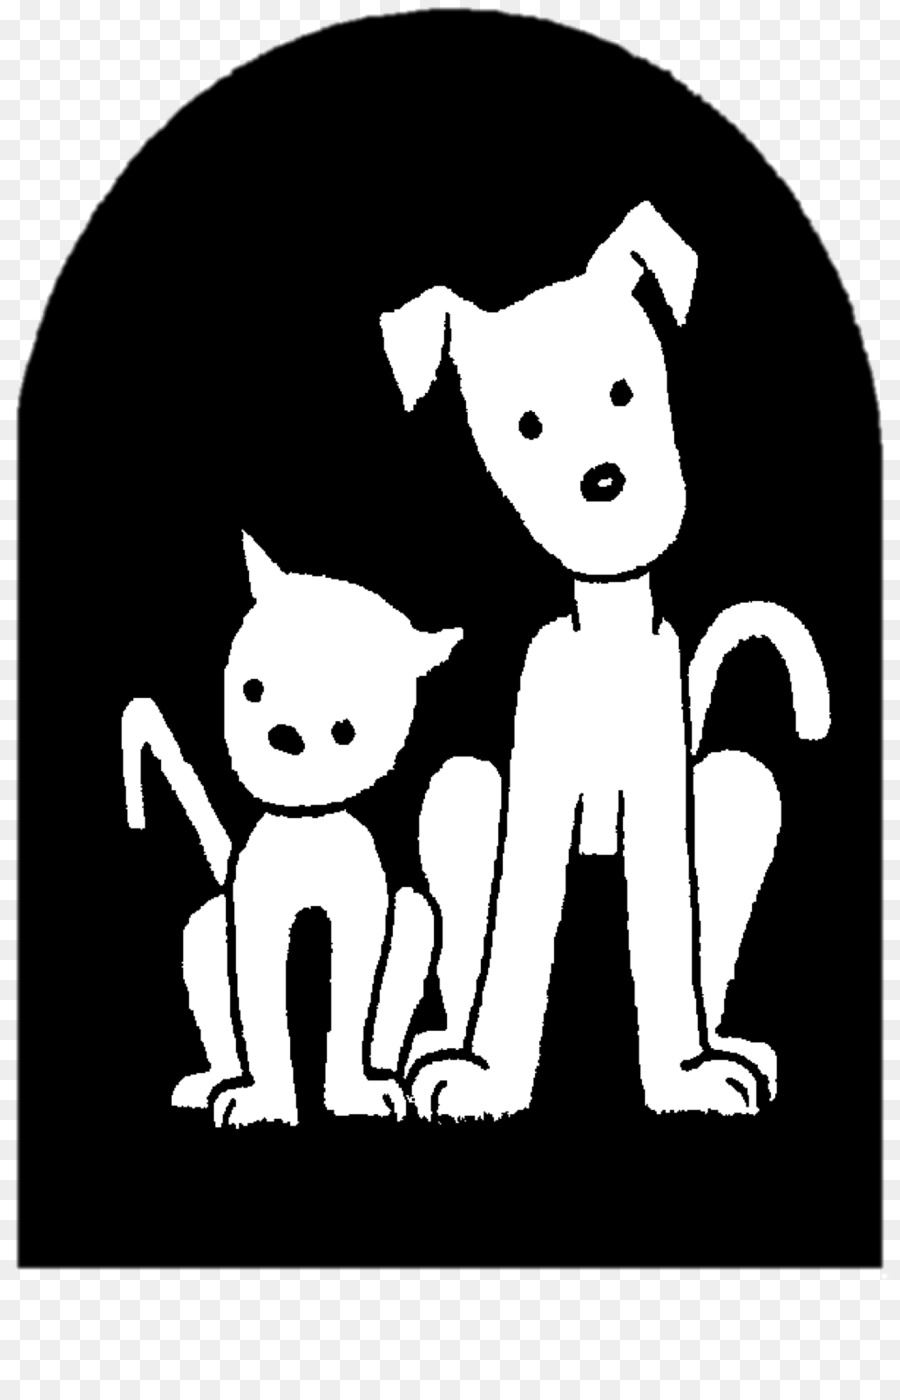 kisspng-dog-cat-animal-shelter-humane-society-clip-art-society-cliparts-5ab6a464b48e18.9954903815219